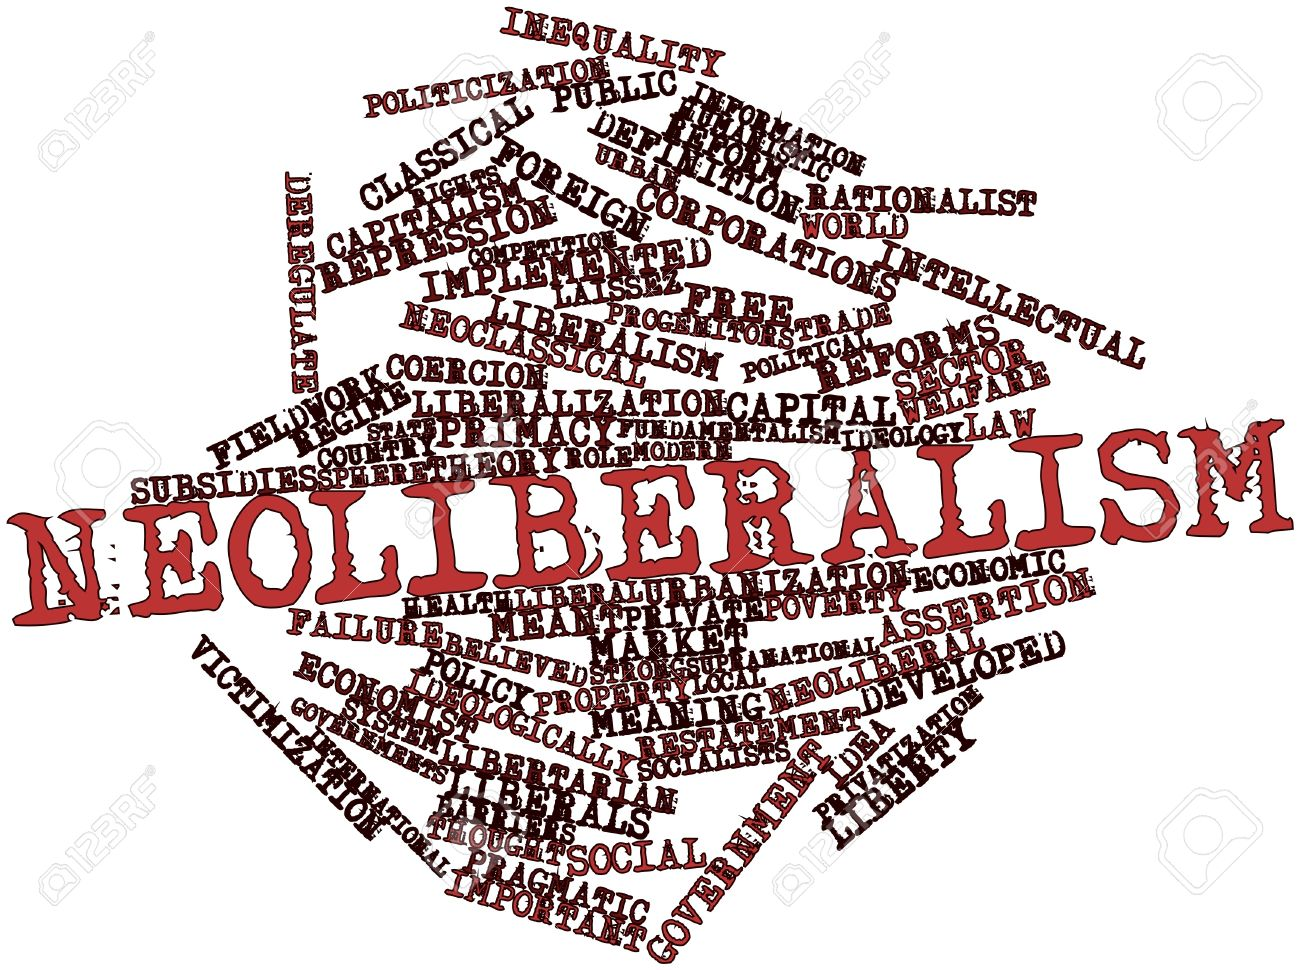 17149339-abstract-word-cloud-for-neoliberalism-with-related-tags-and-terms-stock-photo-1 Sivil Kültür,Neoliberal Kültür